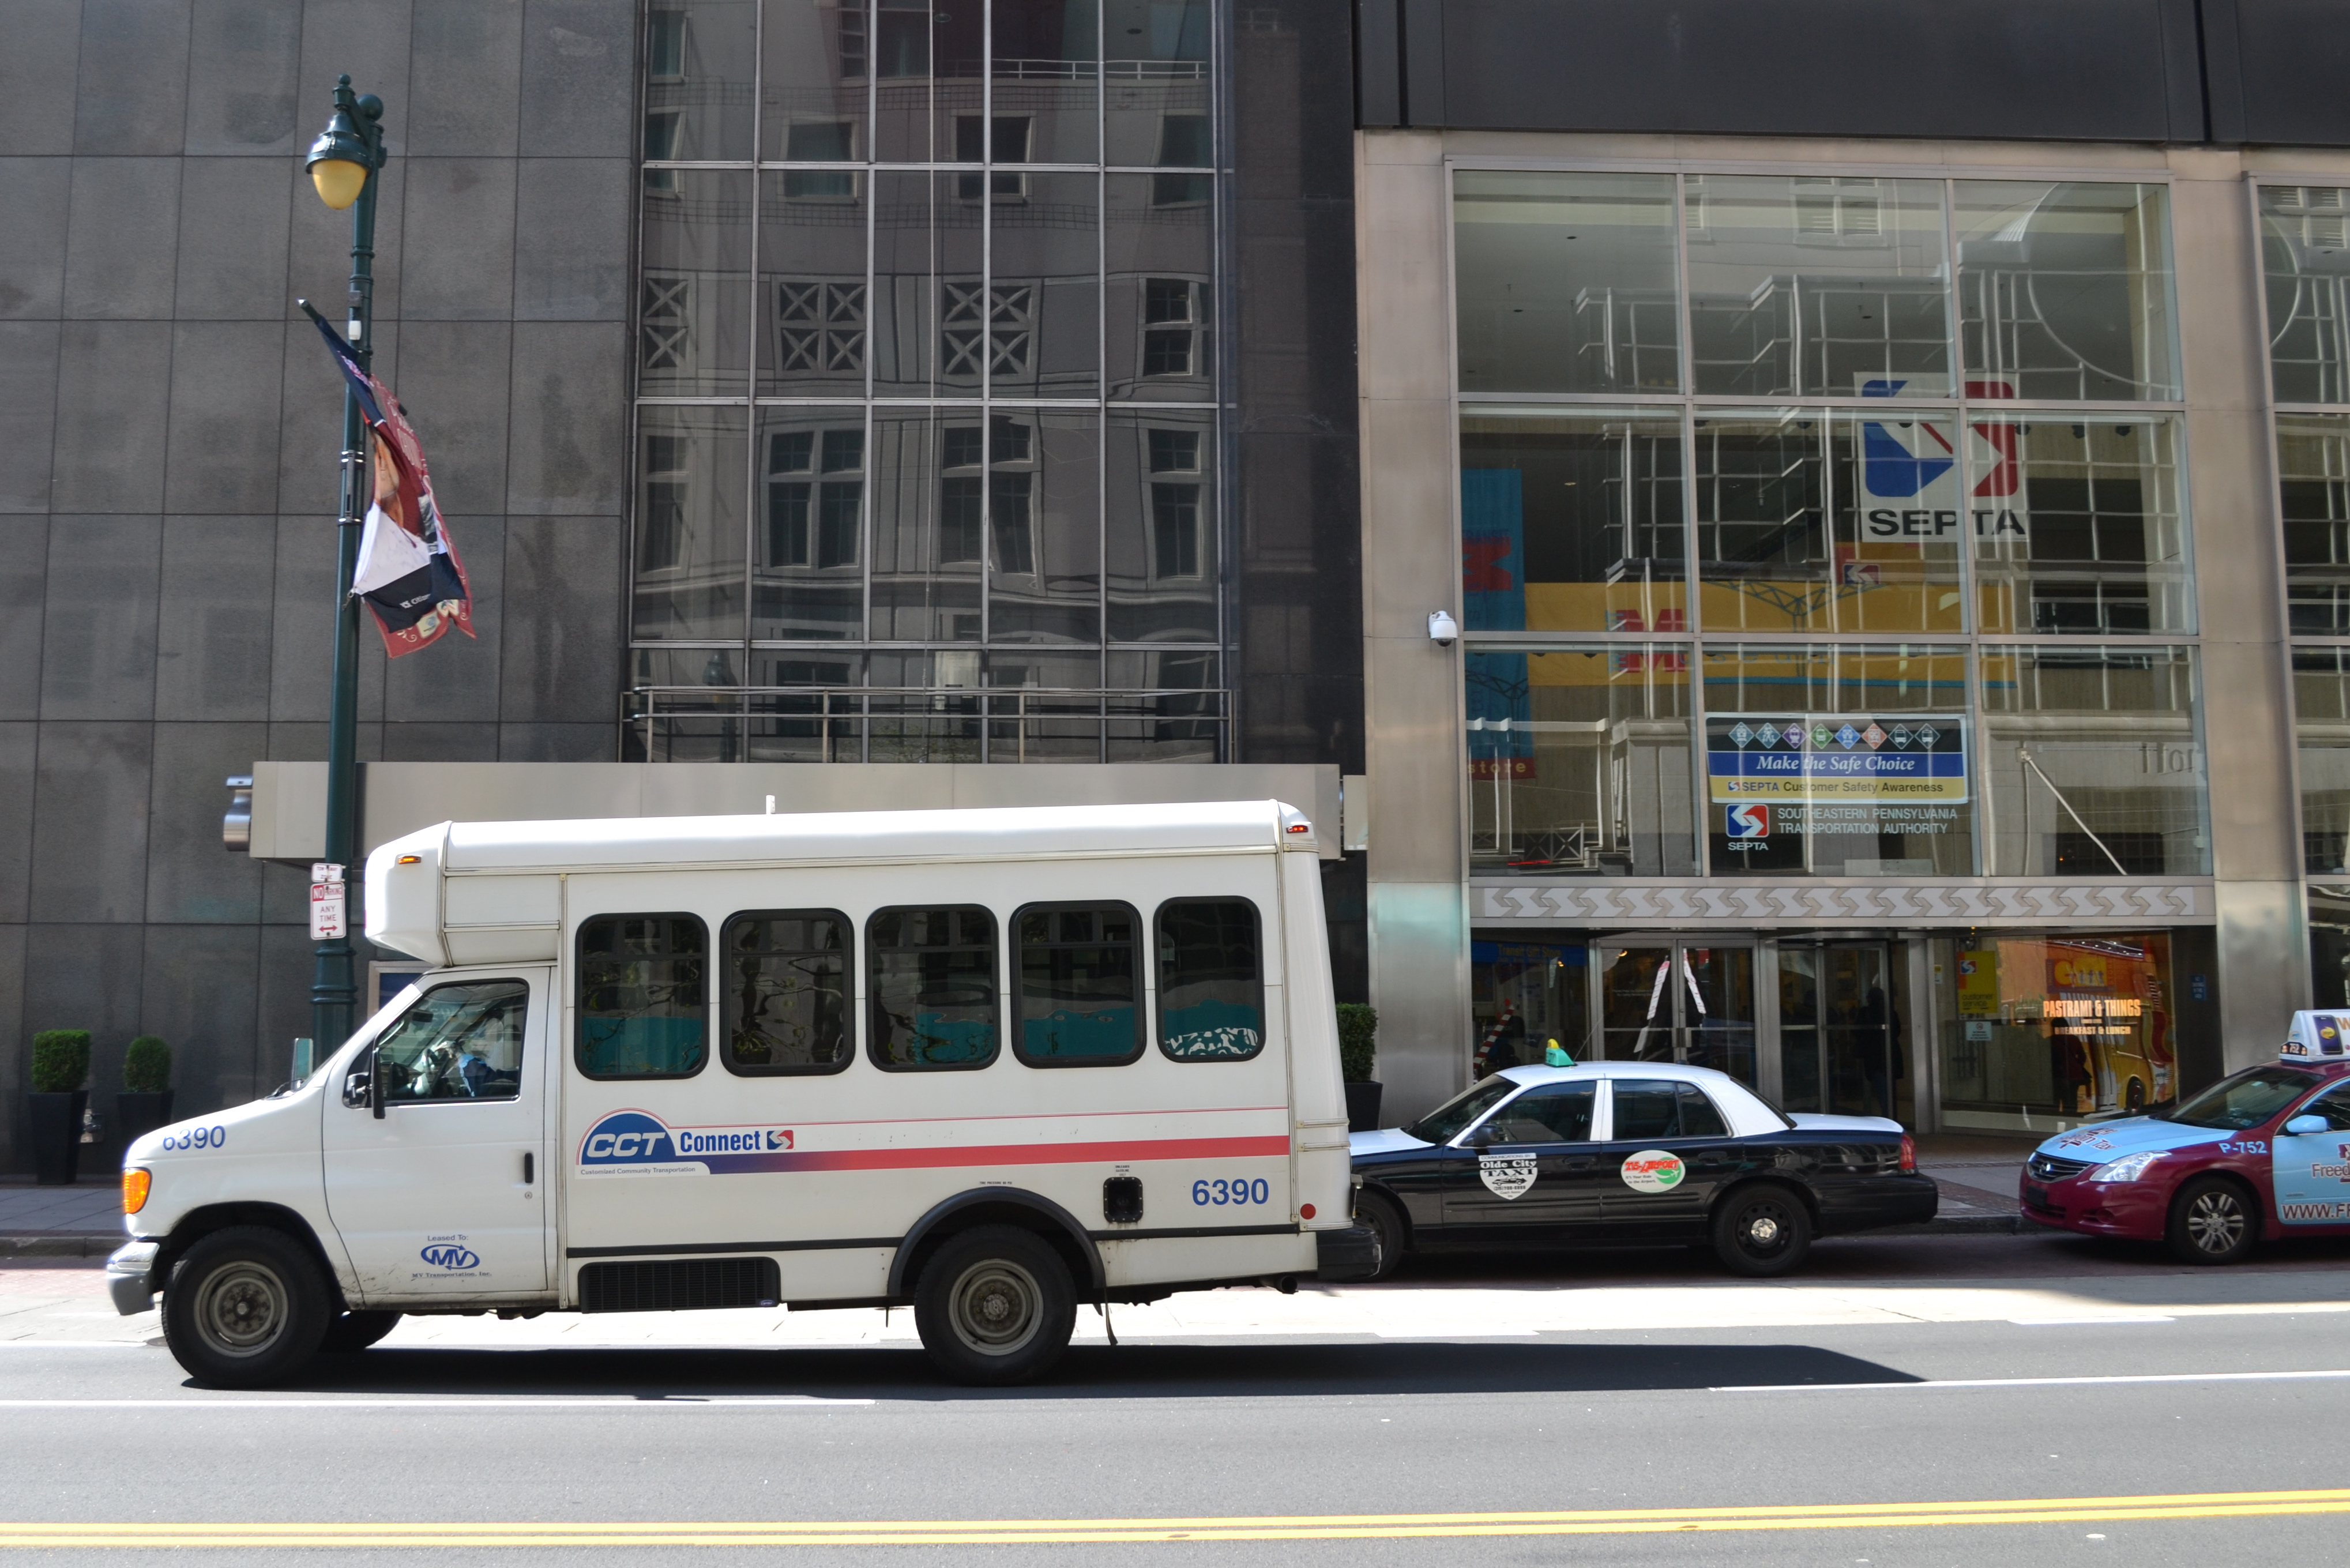 Passengers fear they won't be able to afford CCT service if SEPTA raises fares